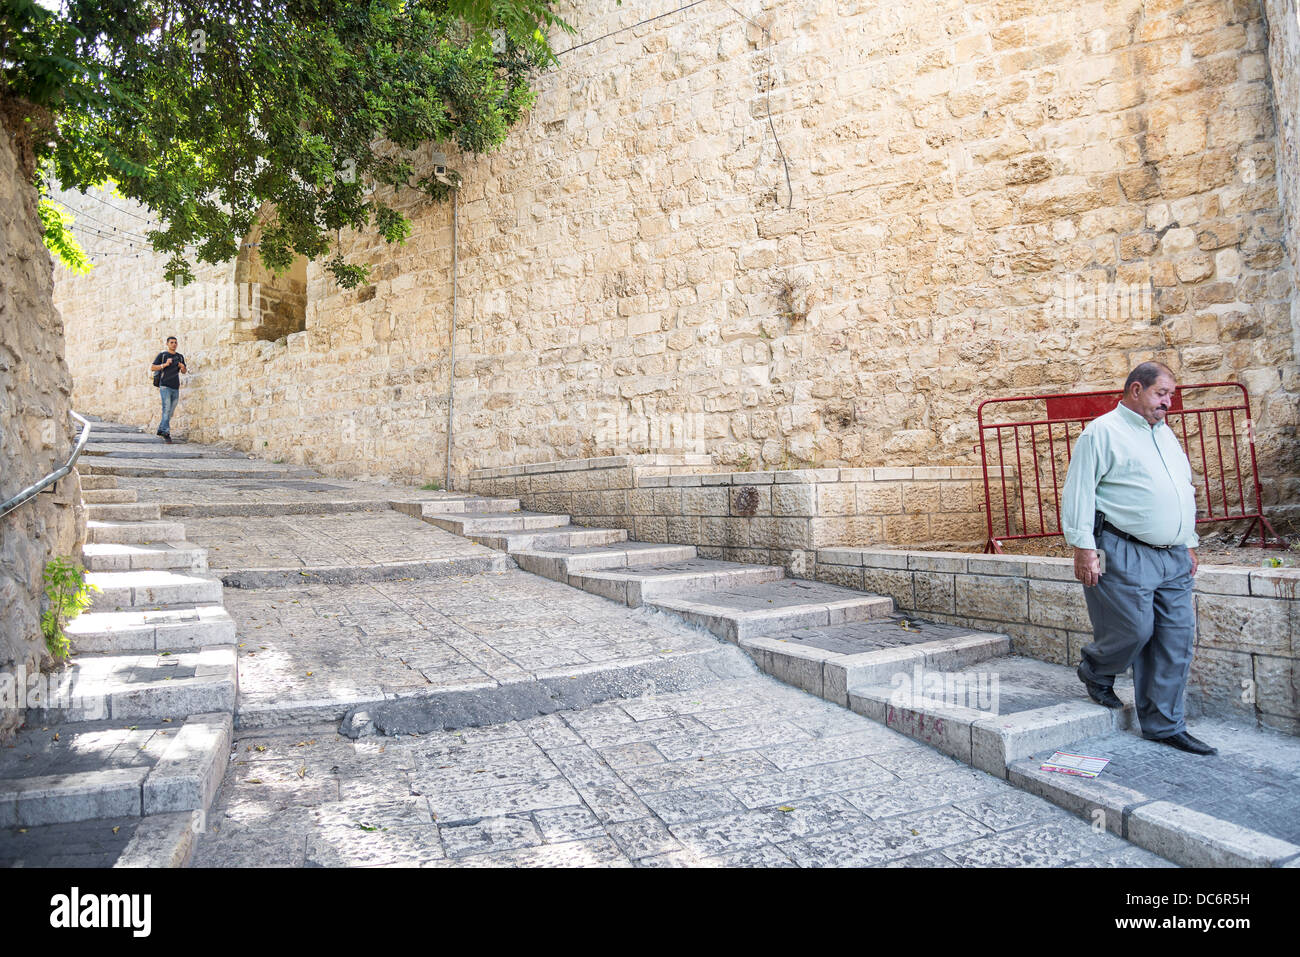 old town street of jerusalem in israel Stock Photo